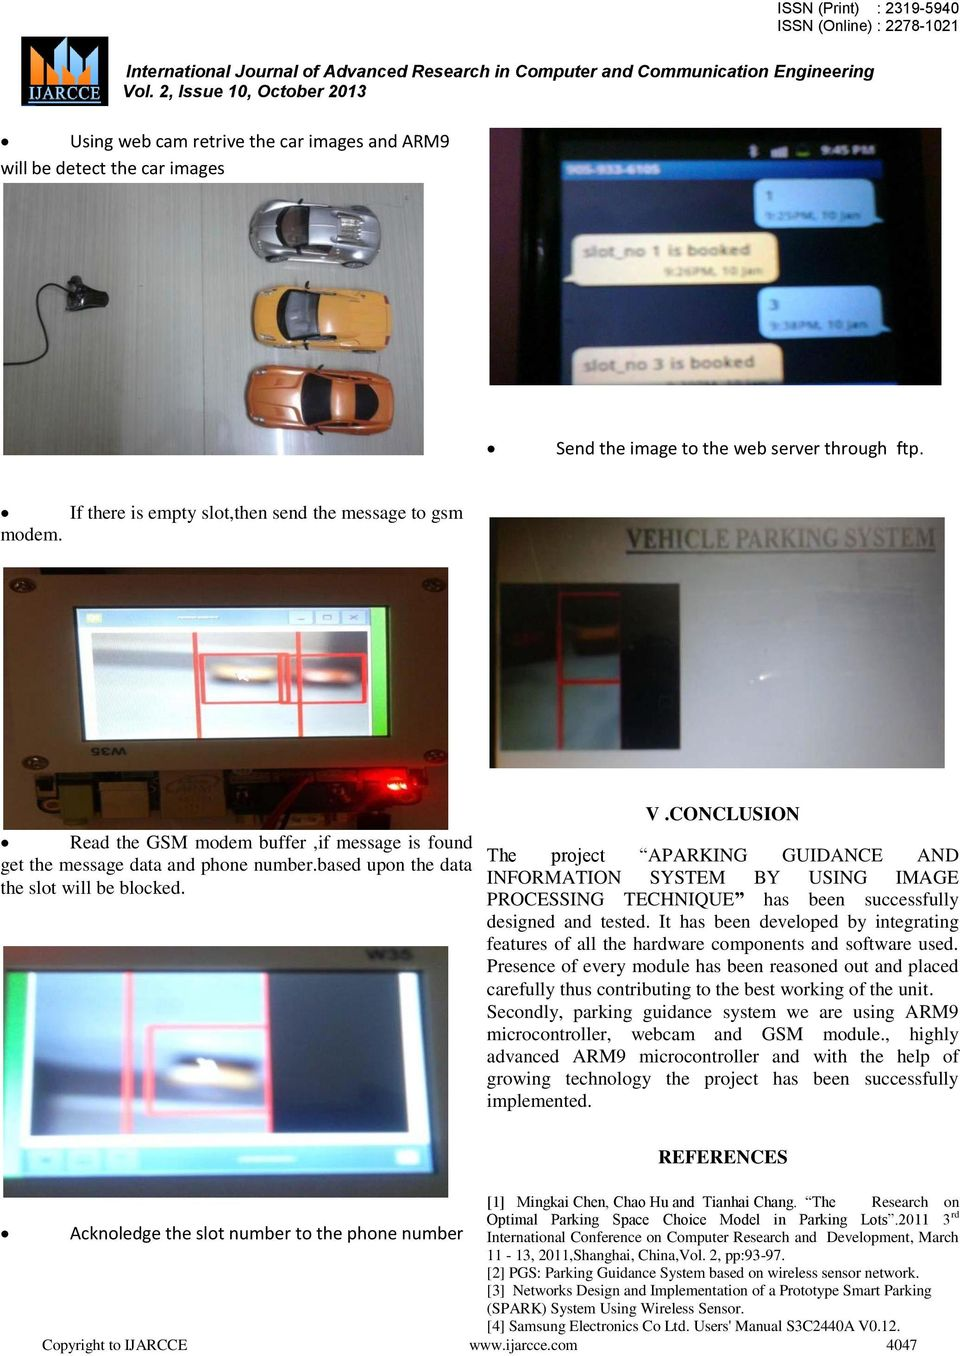 CONCLUSION The project APARKING GUIDANCE AND INFORMATION SYSTEM BY USING IMAGE PROCESSING TECHNIQUE has been successfully designed and tested.